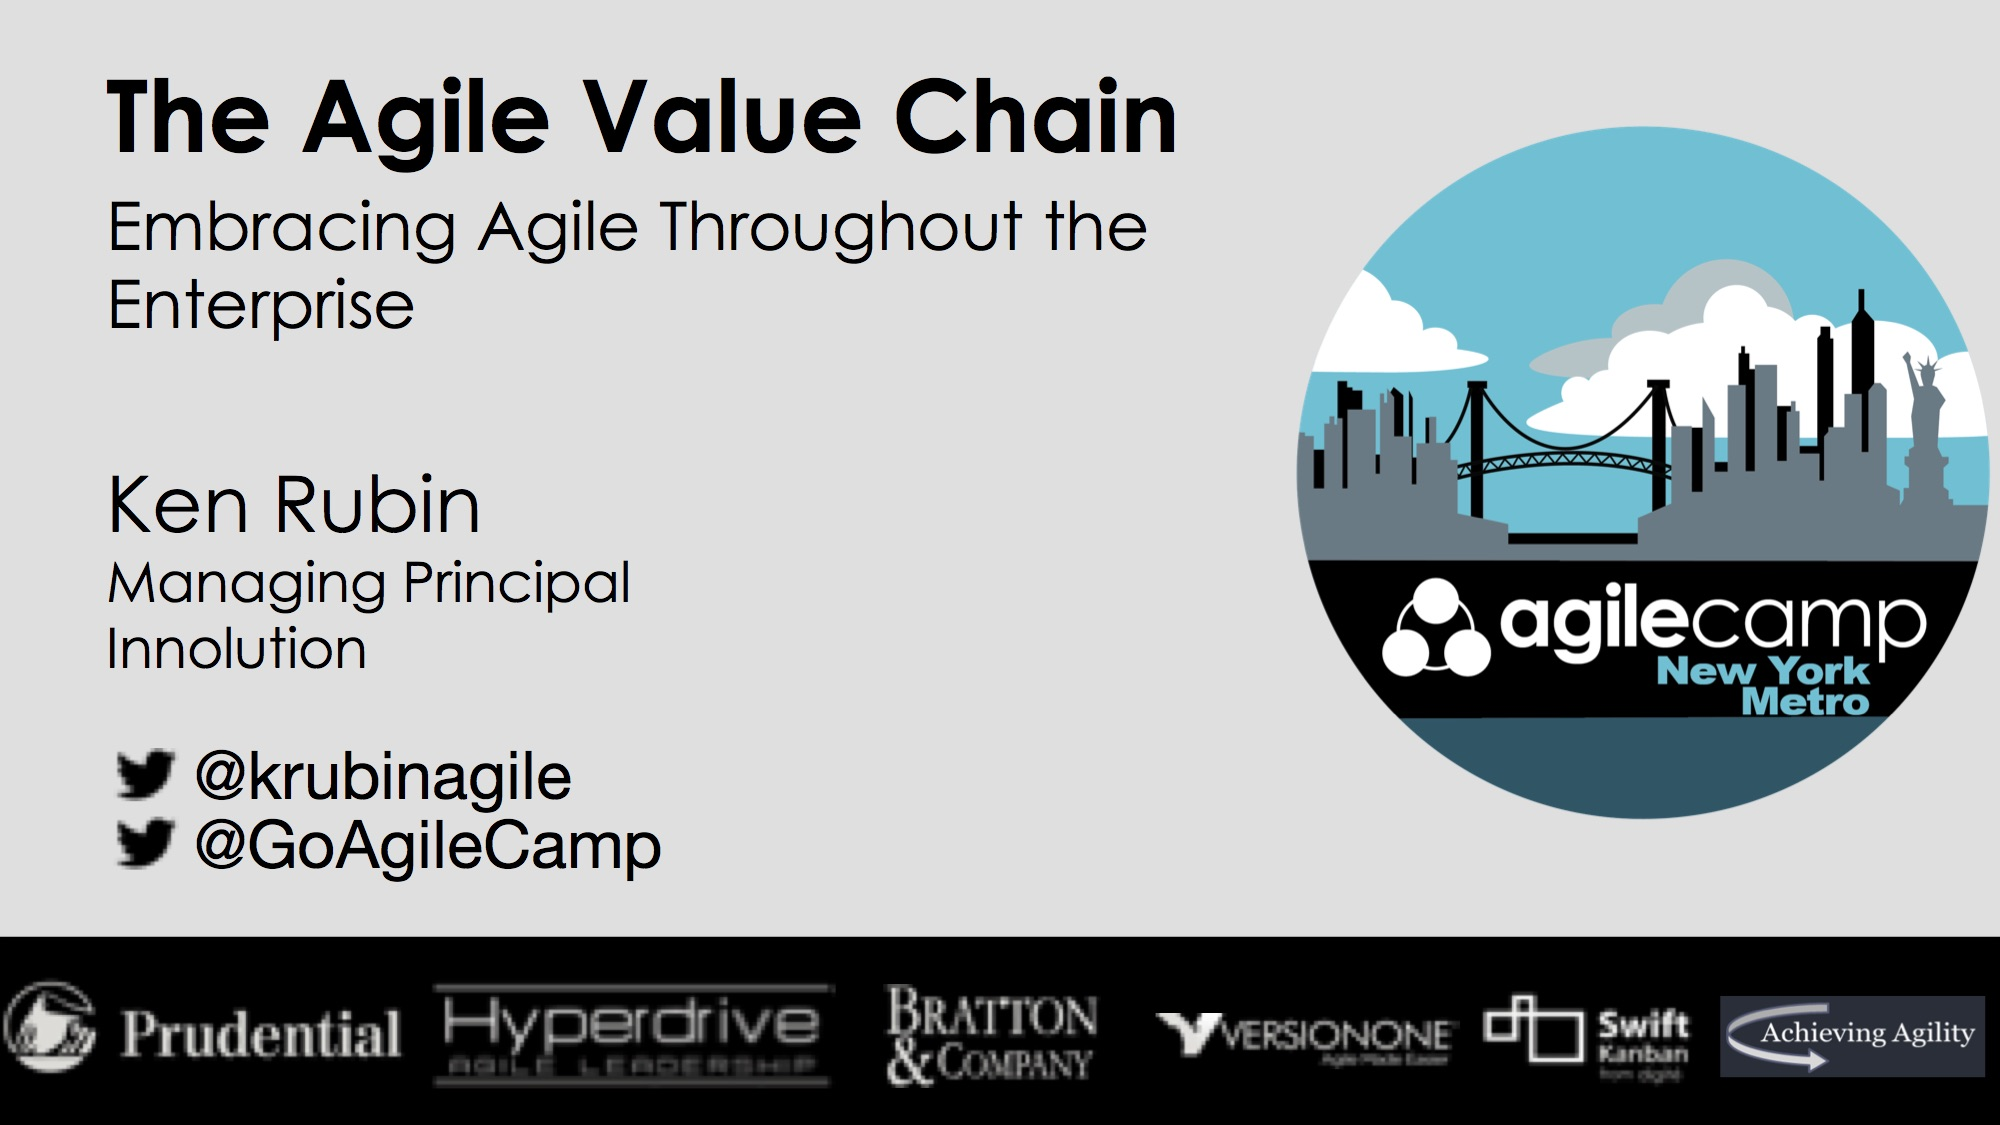 The Agile Value Chain—Embracing Agile Throughout the Enterprise